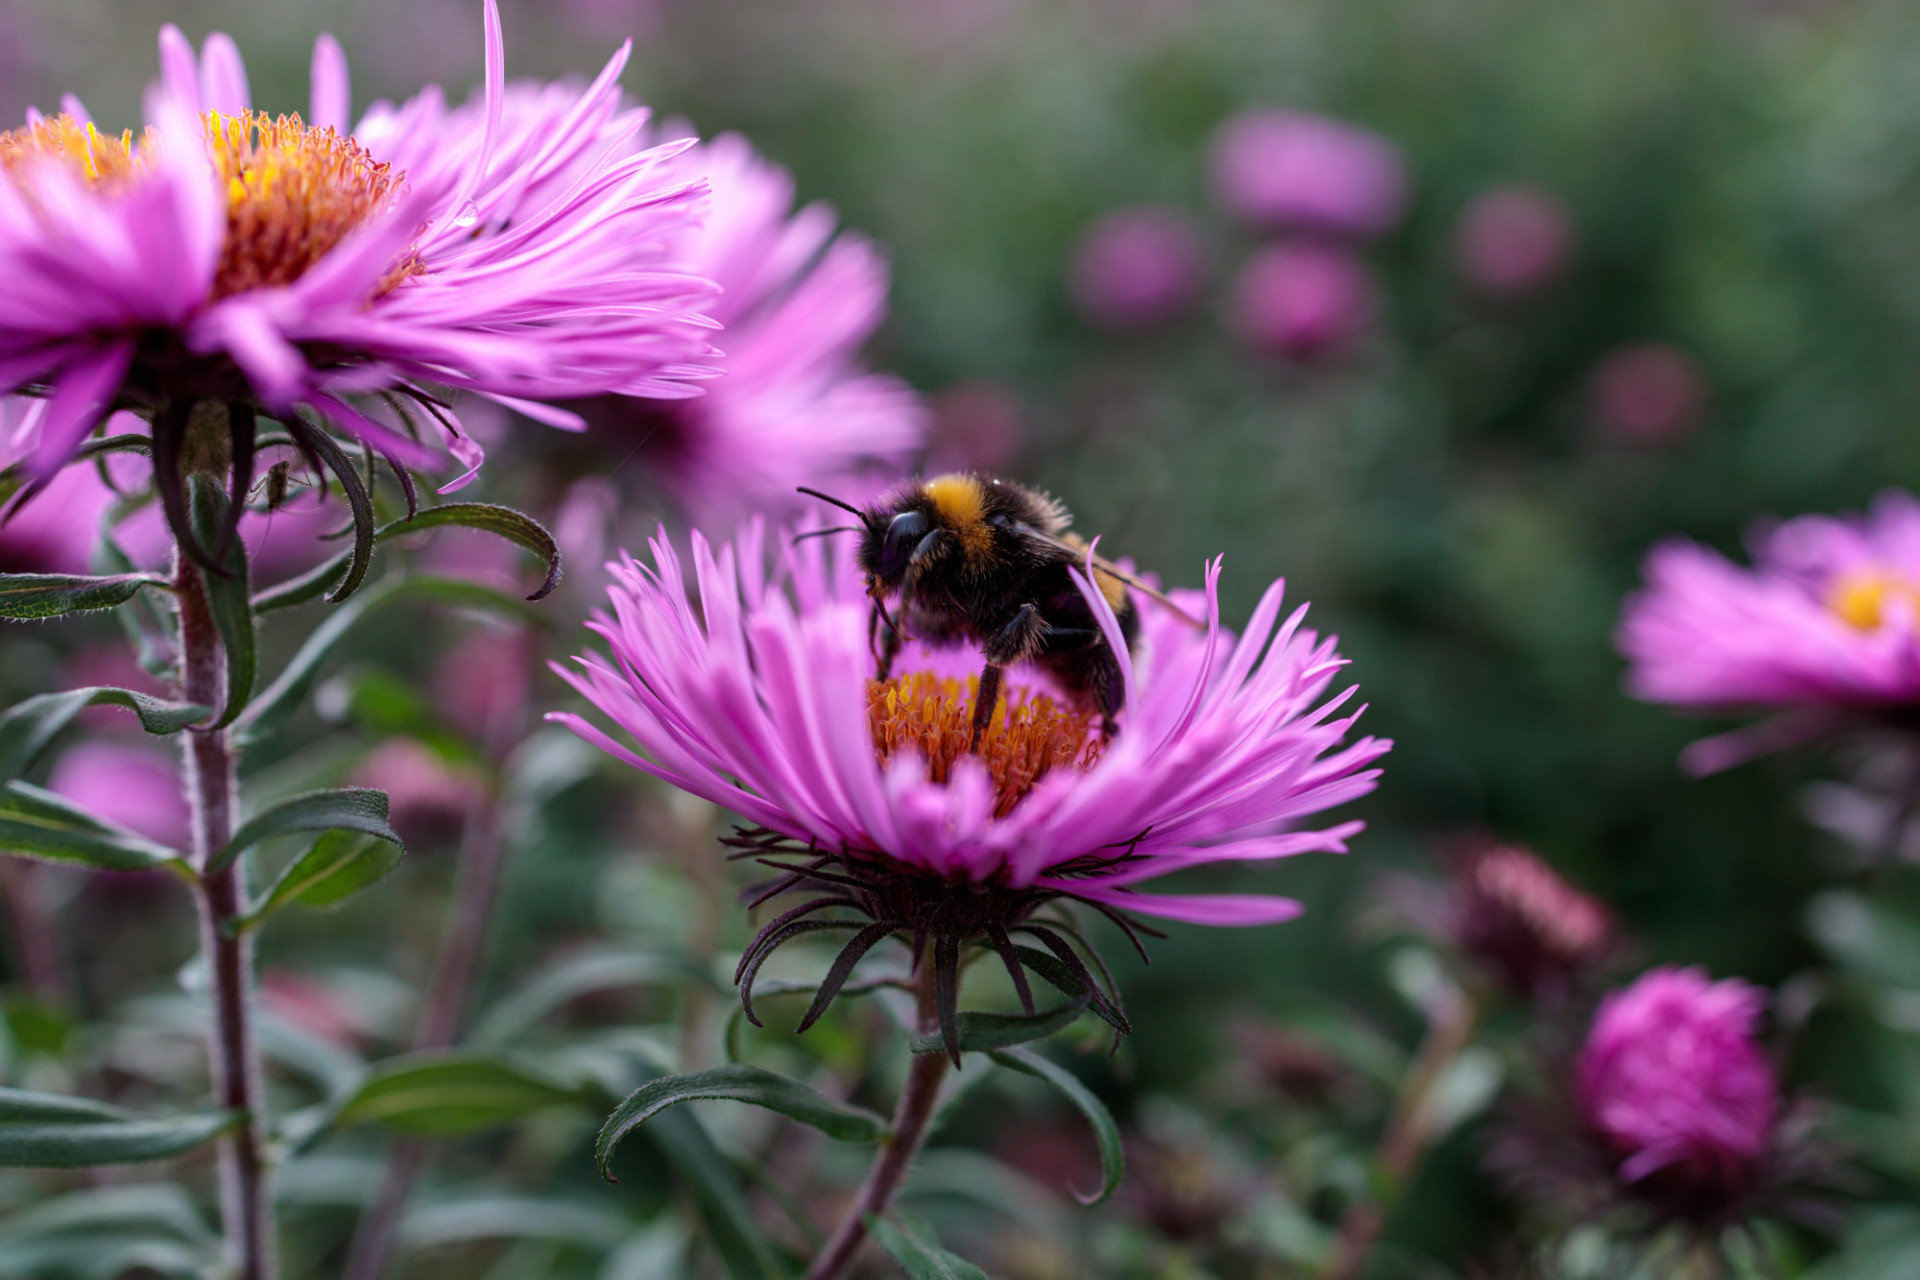 Bee on an pink aster flower